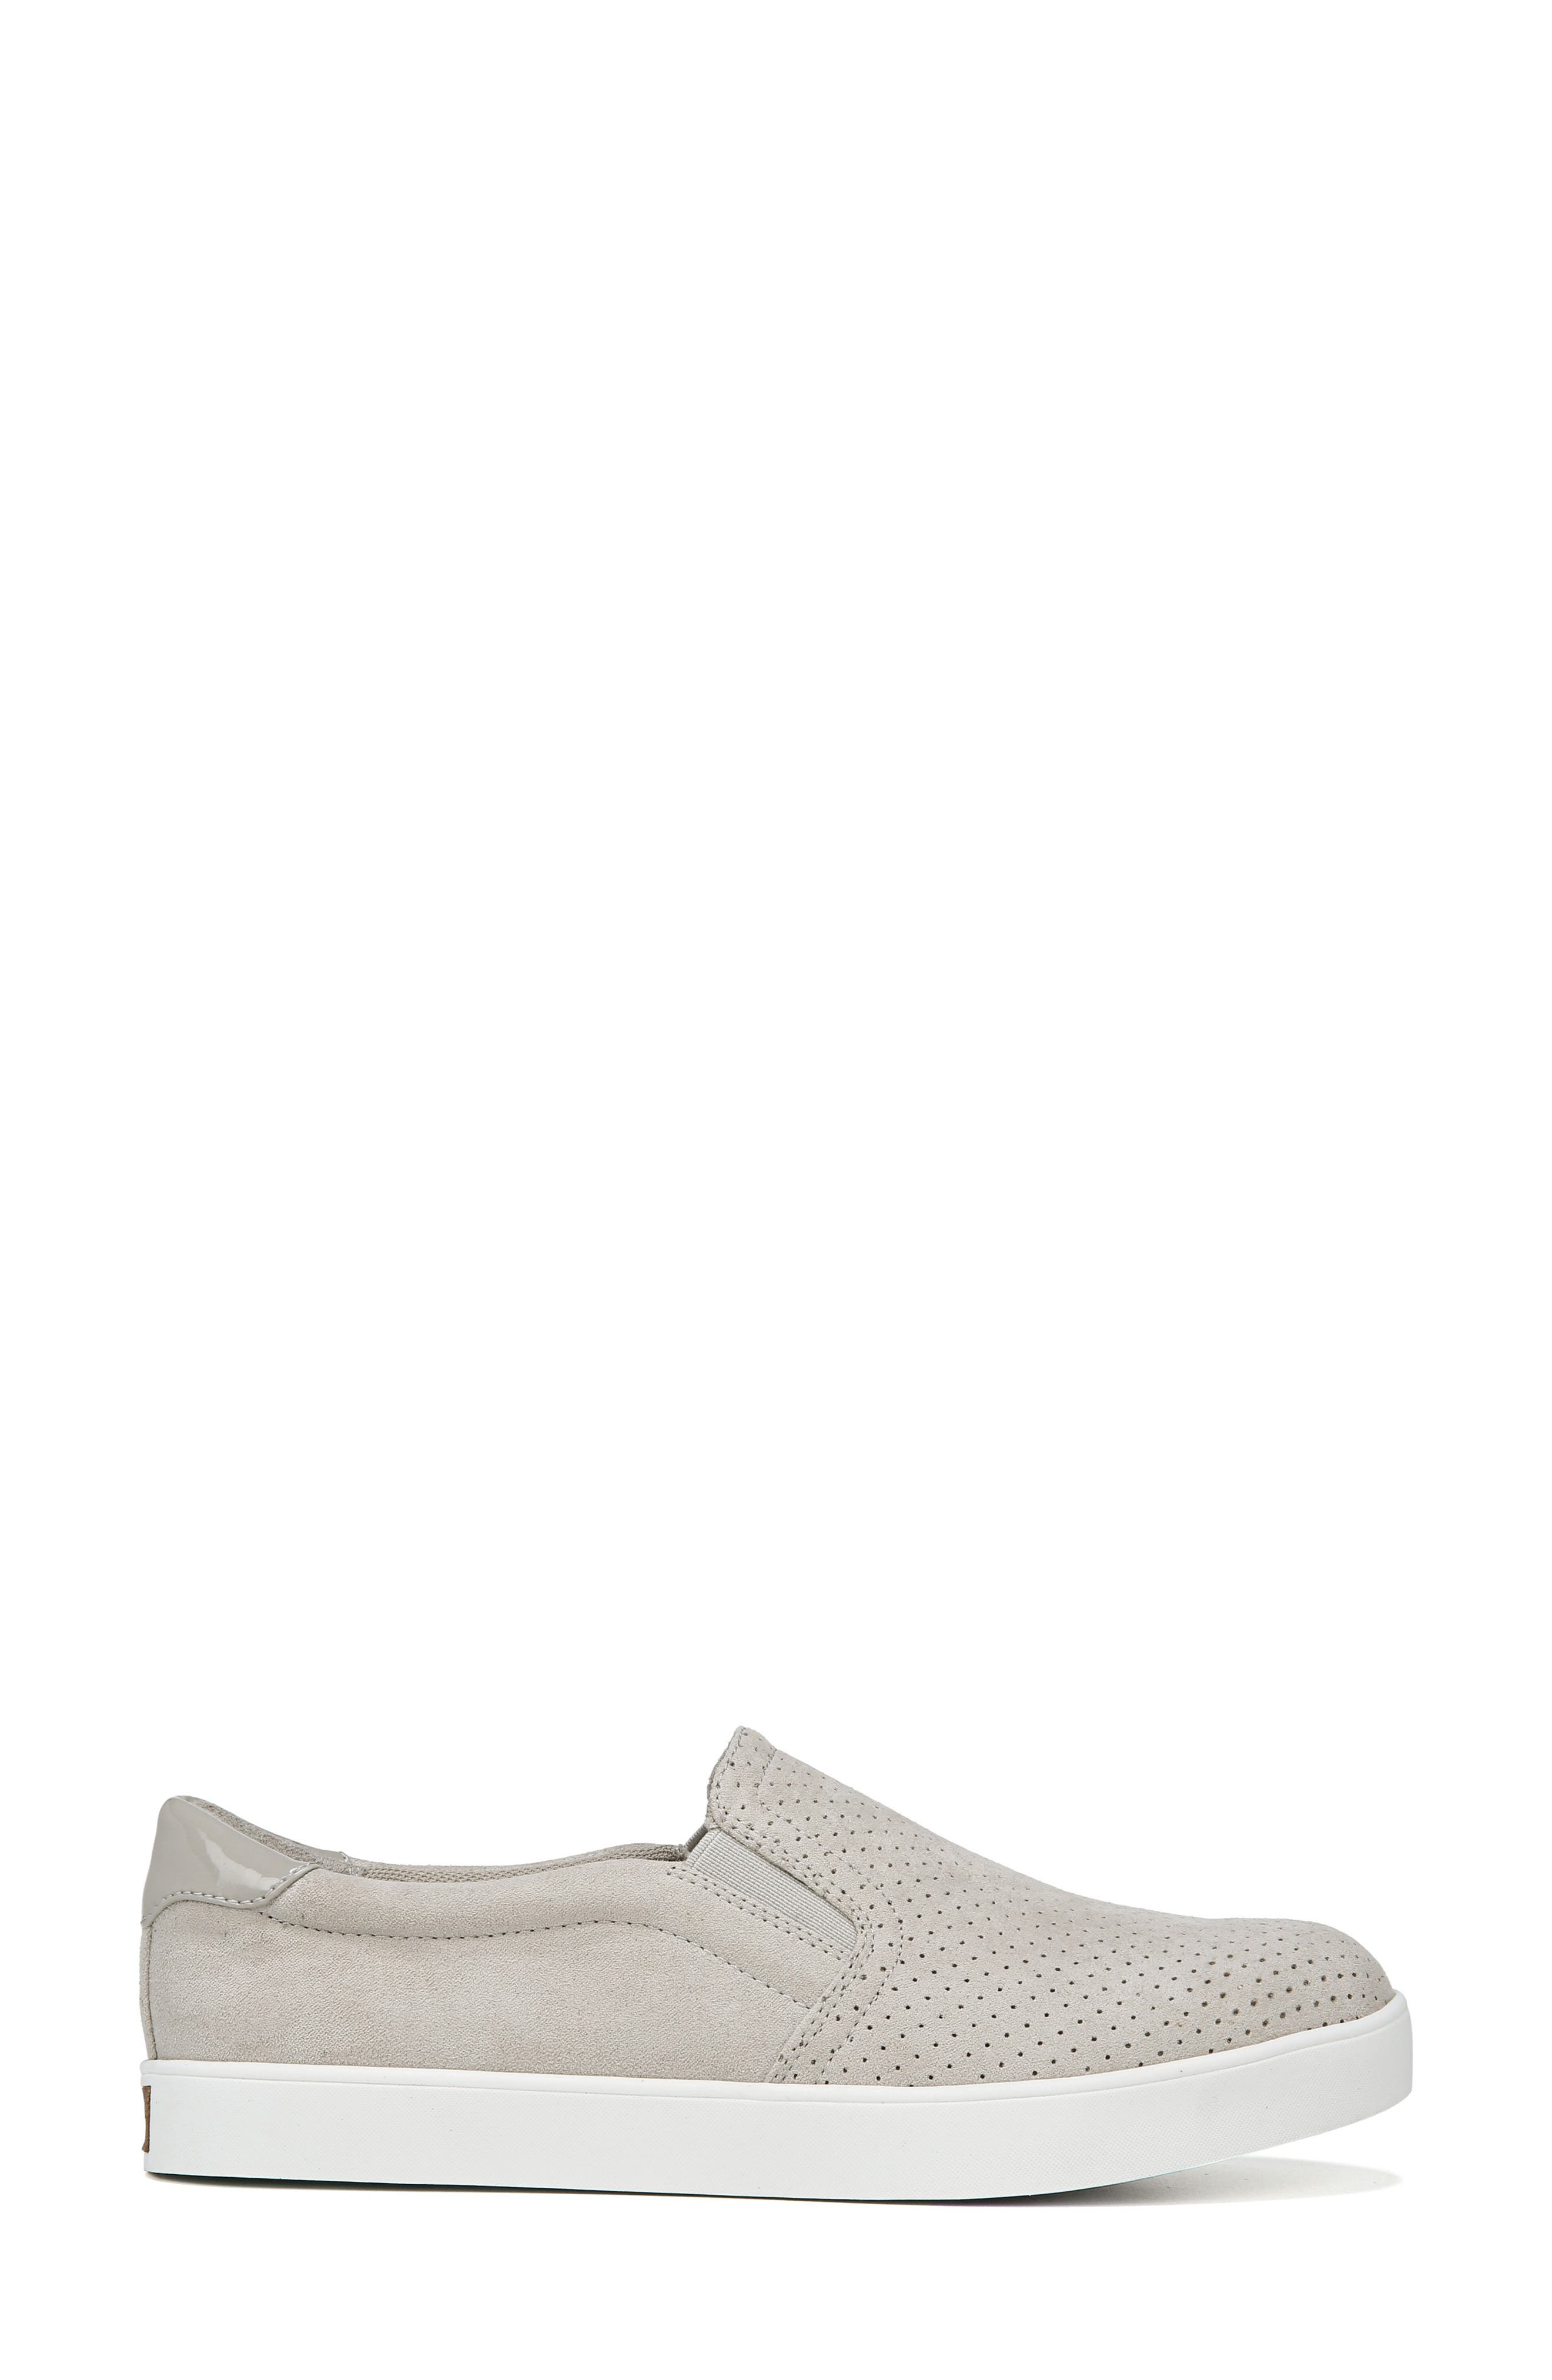 DR. SCHOLL'S, Madison Slip-On Sneaker, Alternate thumbnail 3, color, GREY PERFORATED FABRIC